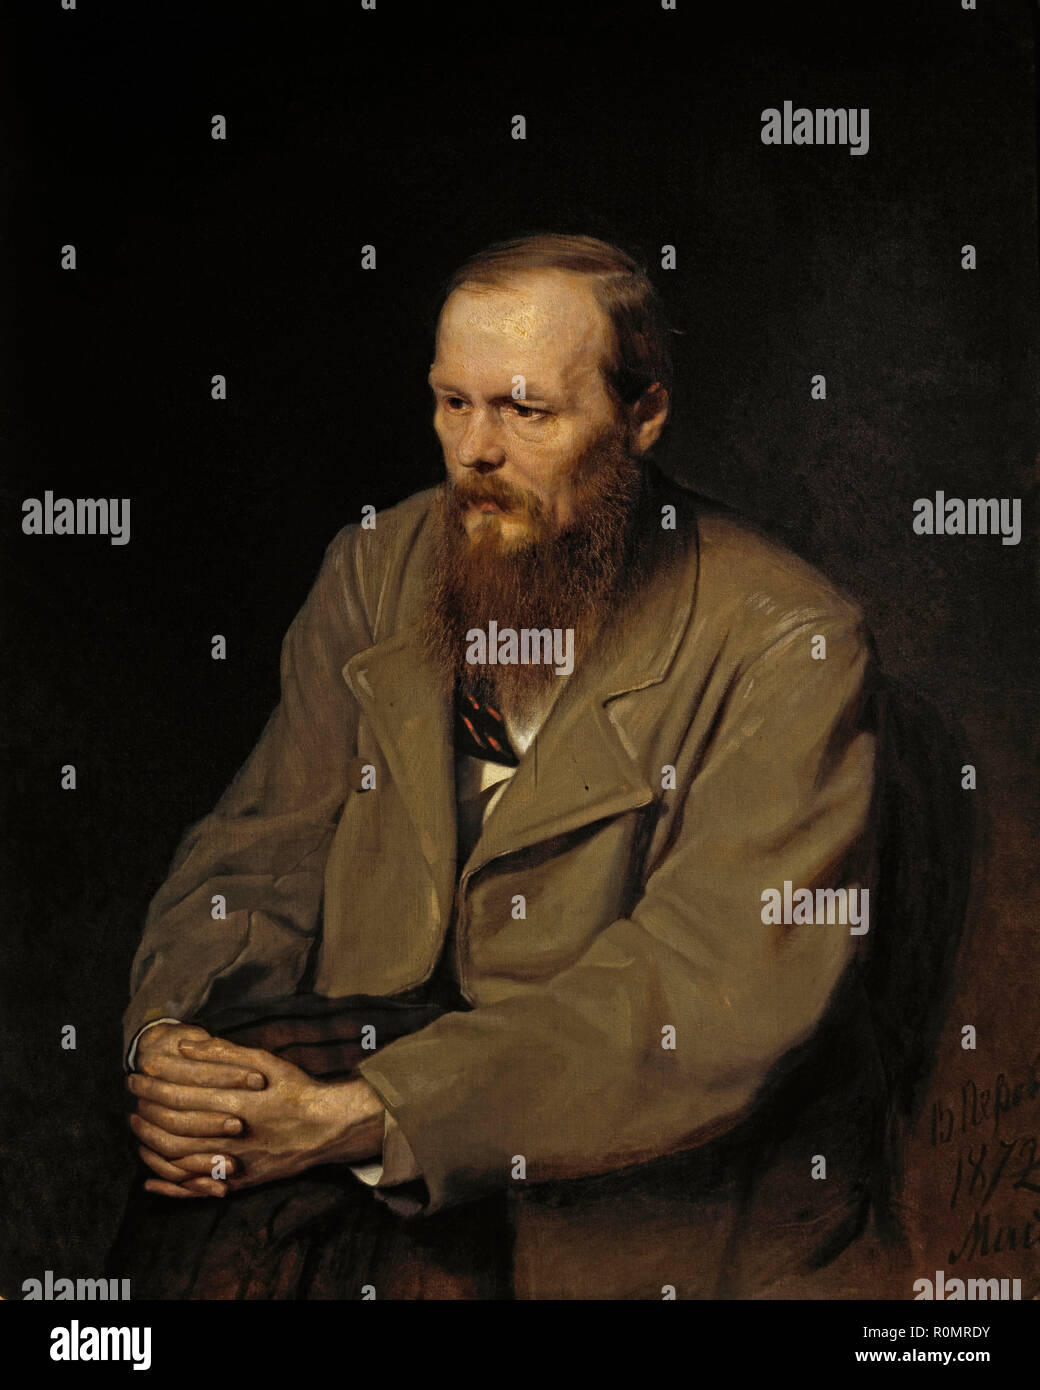 Portrait of Fedor Dostoyevsky. Date/Period: 1872. Painting. Oil on canvas. Height: 99 cm (38.9 in); Width: 80.5 cm (31.6 in). Author: Vasily Perov. WASSILI GRIGORJEWITSCH PEROW. Perov, Vasili Grigoryevich. - Stock Image